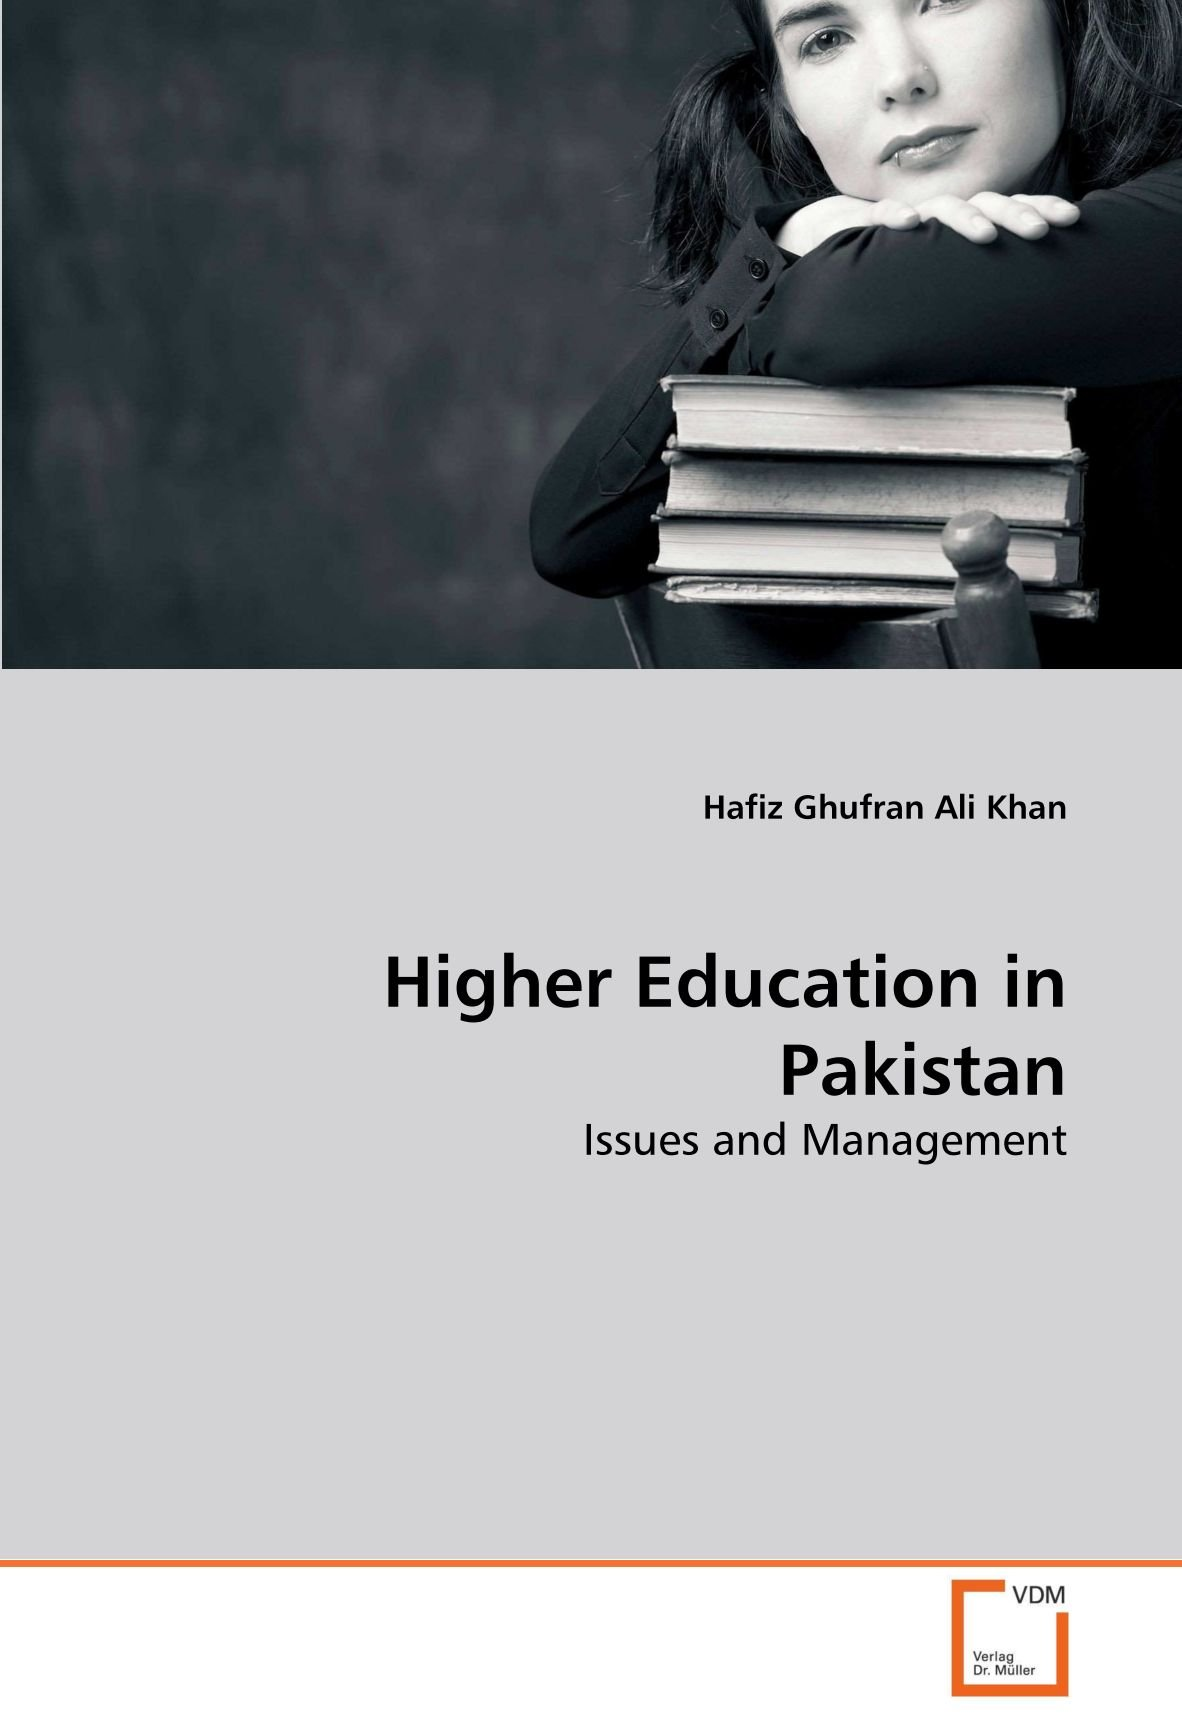 Higher Education in Pakistan: Issues and Management: Hafiz